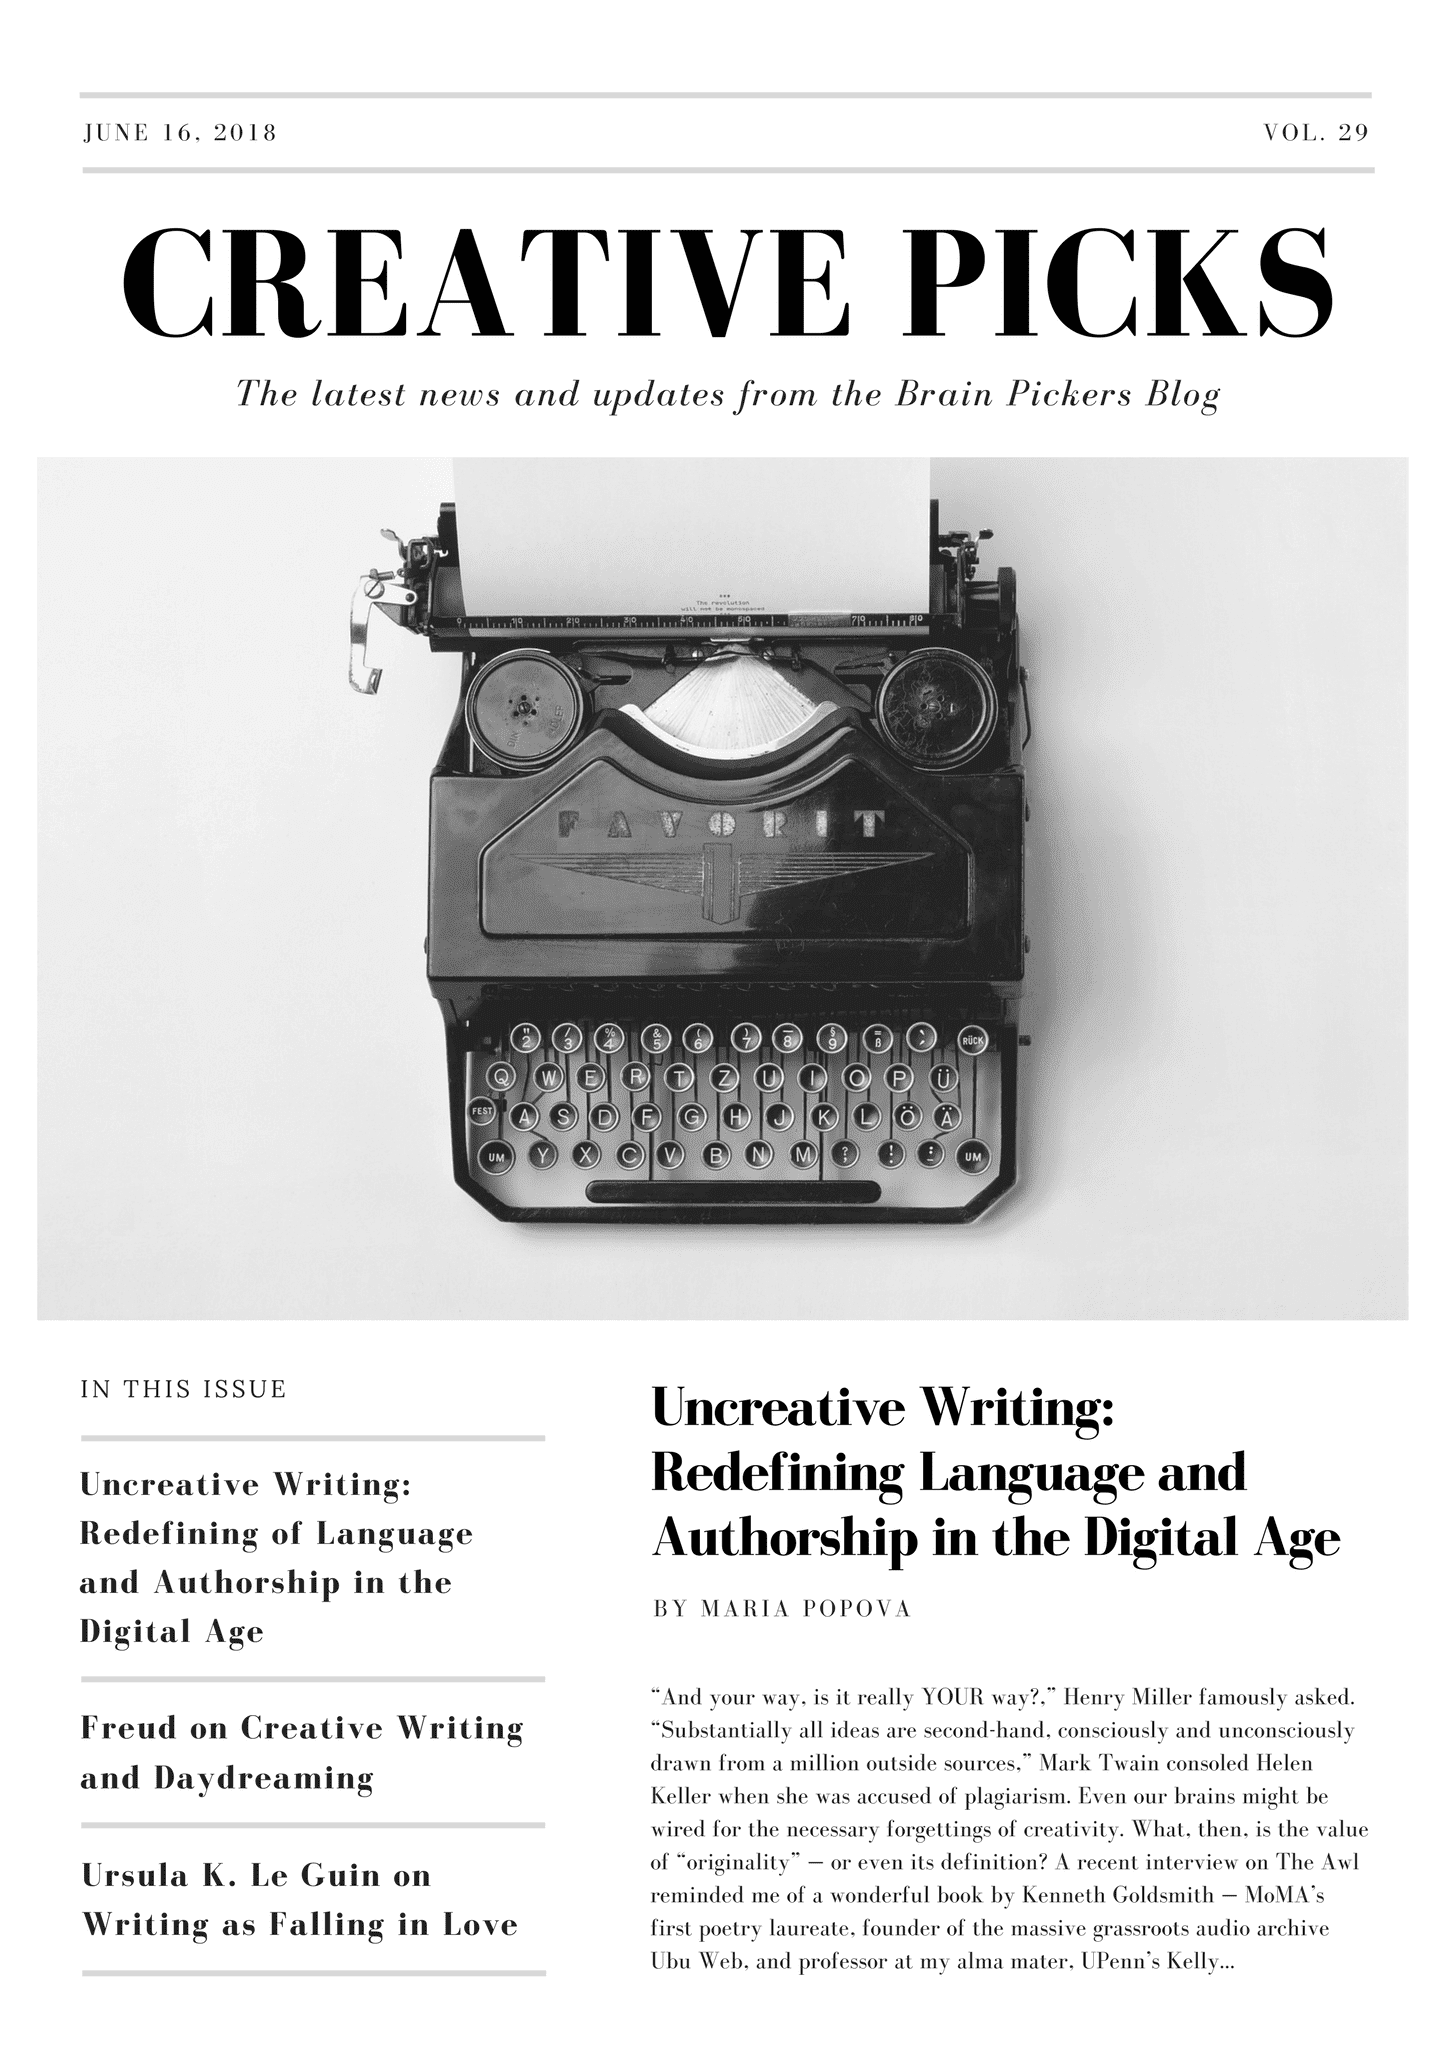 Simple Black and White Typewriter Photo Newsletter